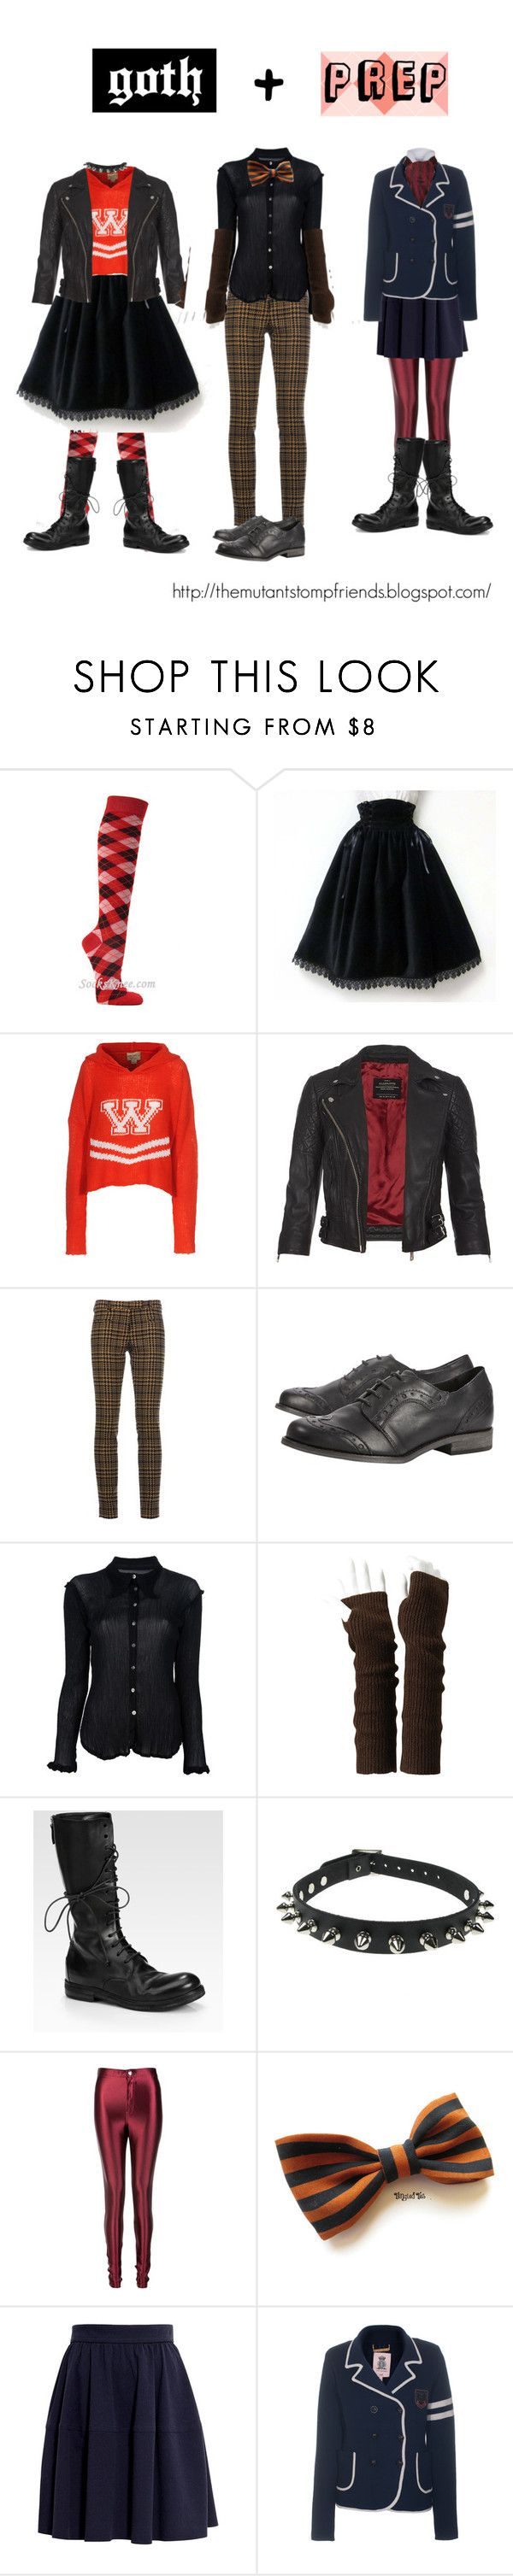 """""""goth + prep"""" by ahp259 ❤ liked on Polyvore featuring Wildfox, AllSaints, True Royal, Dune, Issey Miyake Cauliflower, Uniqlo, Marsèll, Glamorous, Carven and Juicy Couture"""